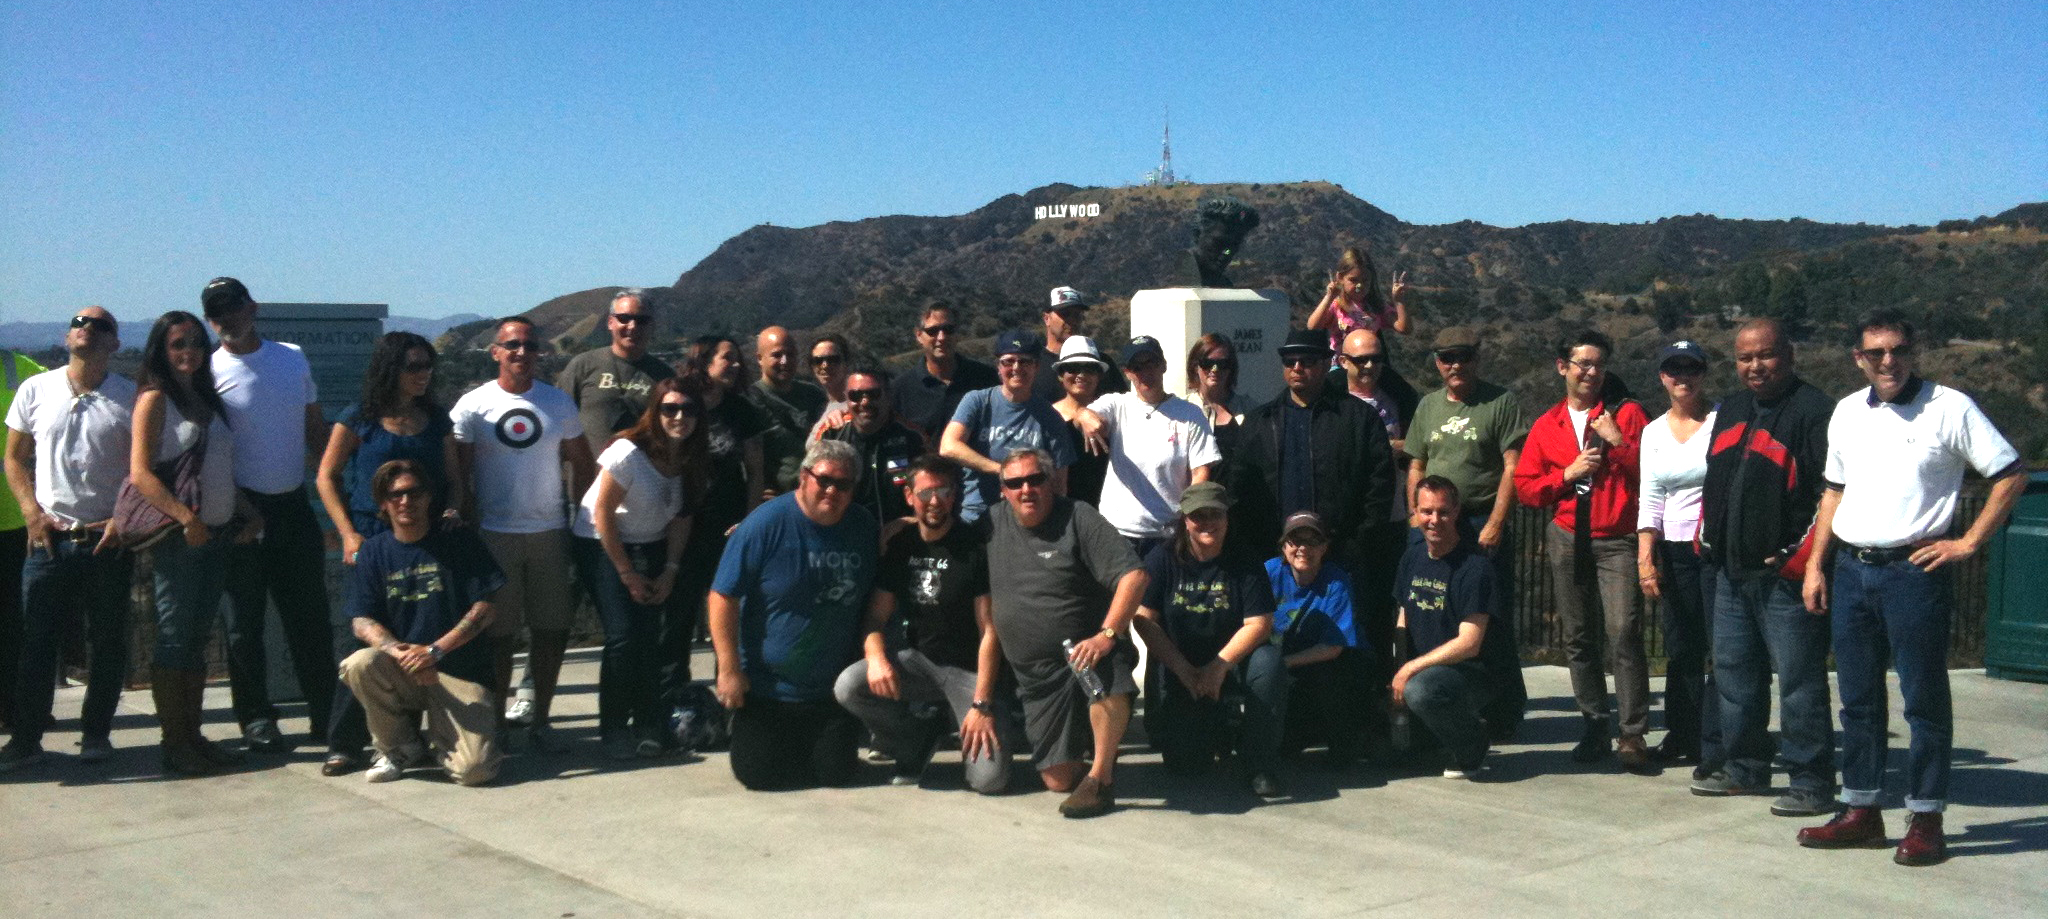 Philip McCaleb (front, center, with water bottle) with Genuine owners at a customer appreciation ride in Los Angeles, March 2012.